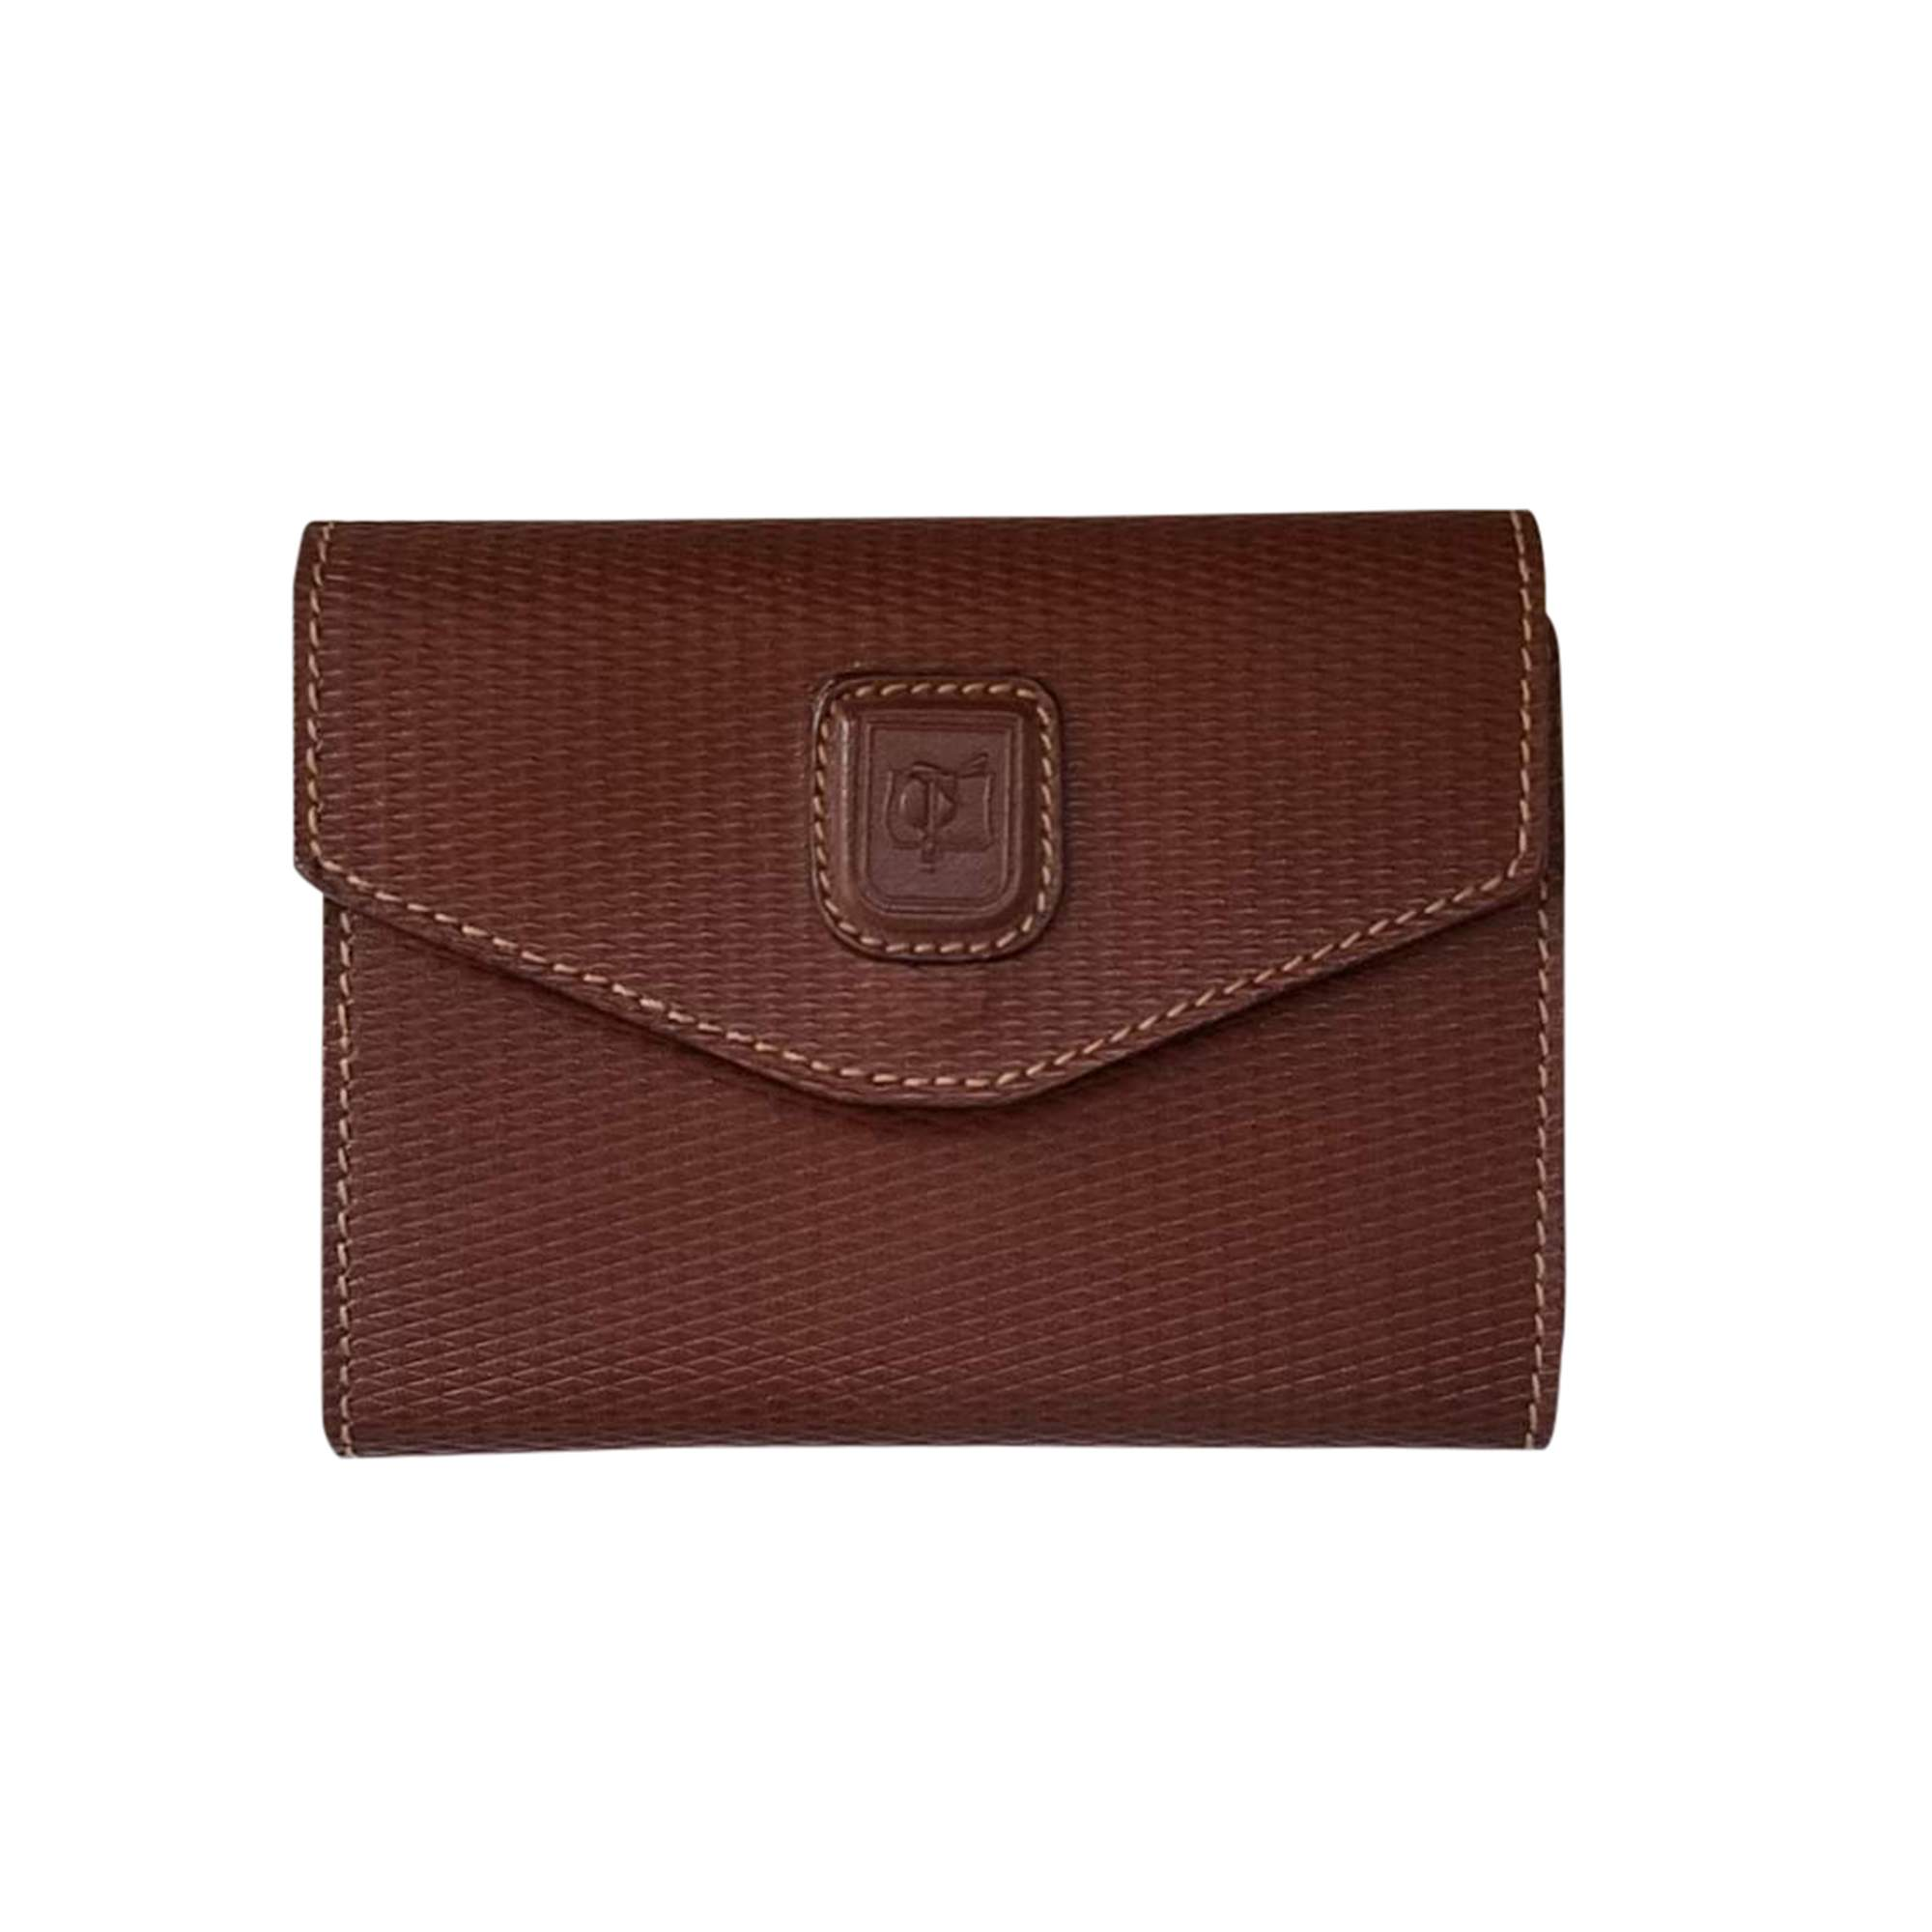 0802b40d69b82 Gucci Vintage Leather Agenda Notebook